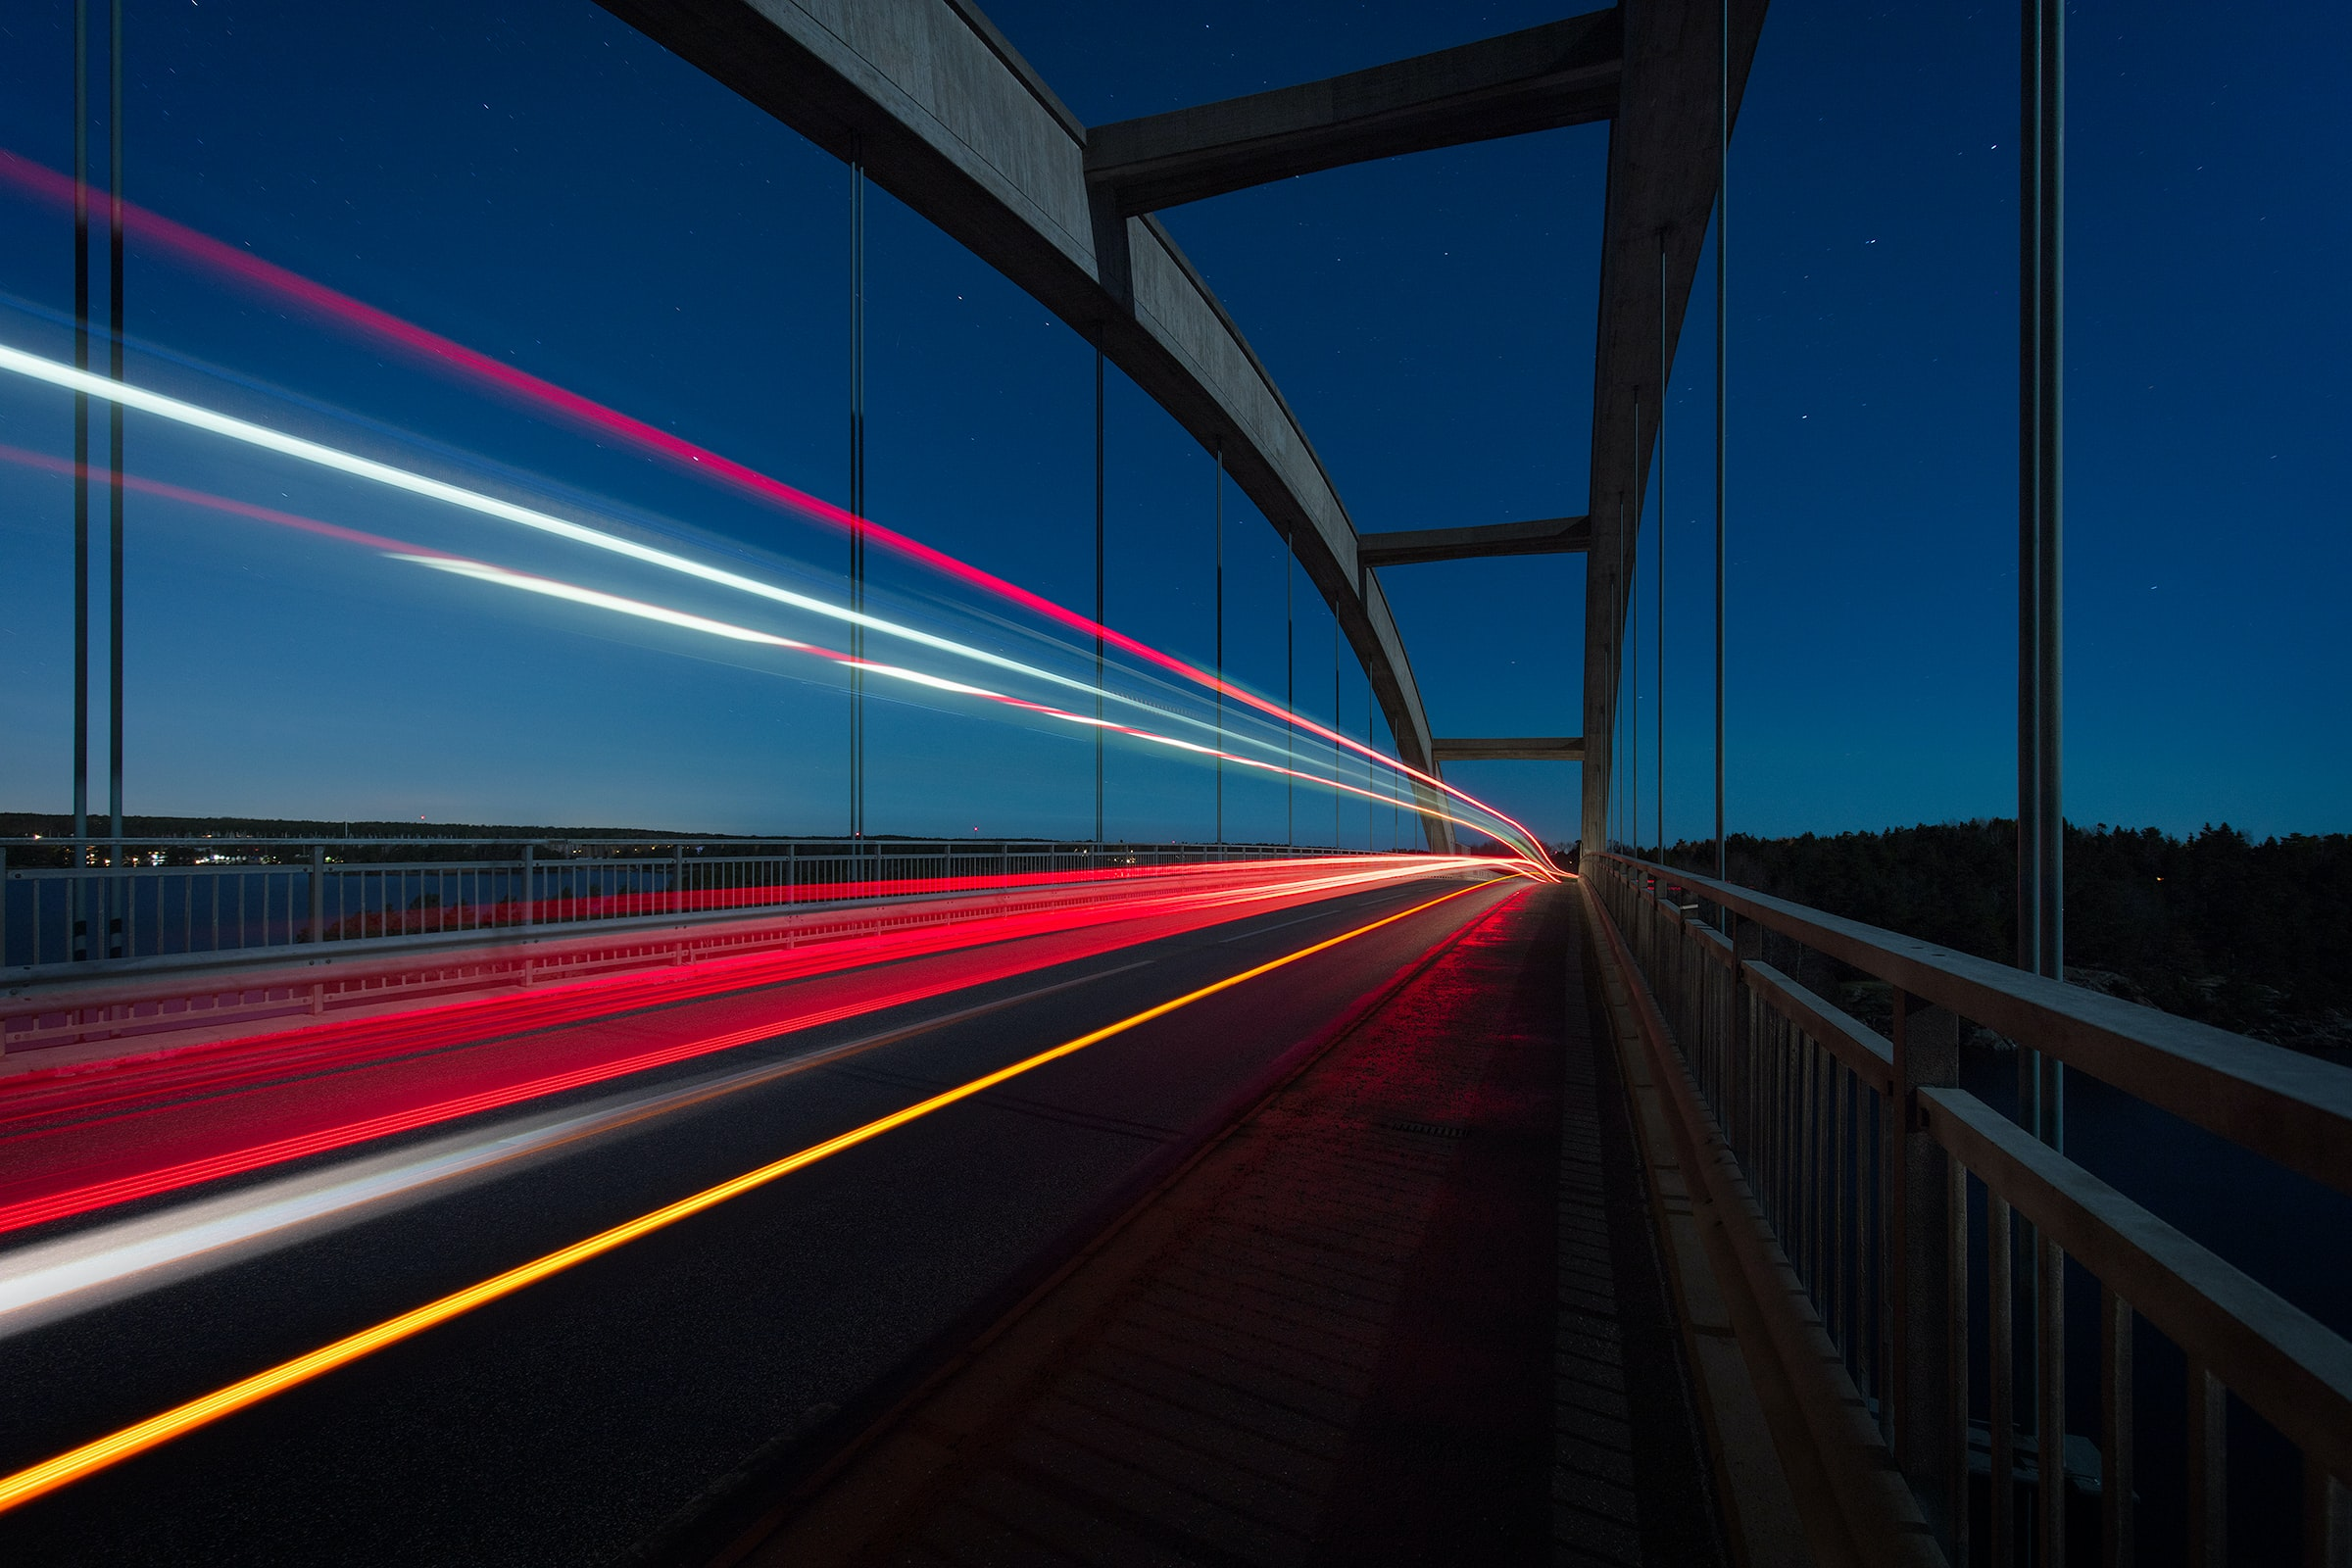 gray suspension bridge with streaks of light time lapse photography